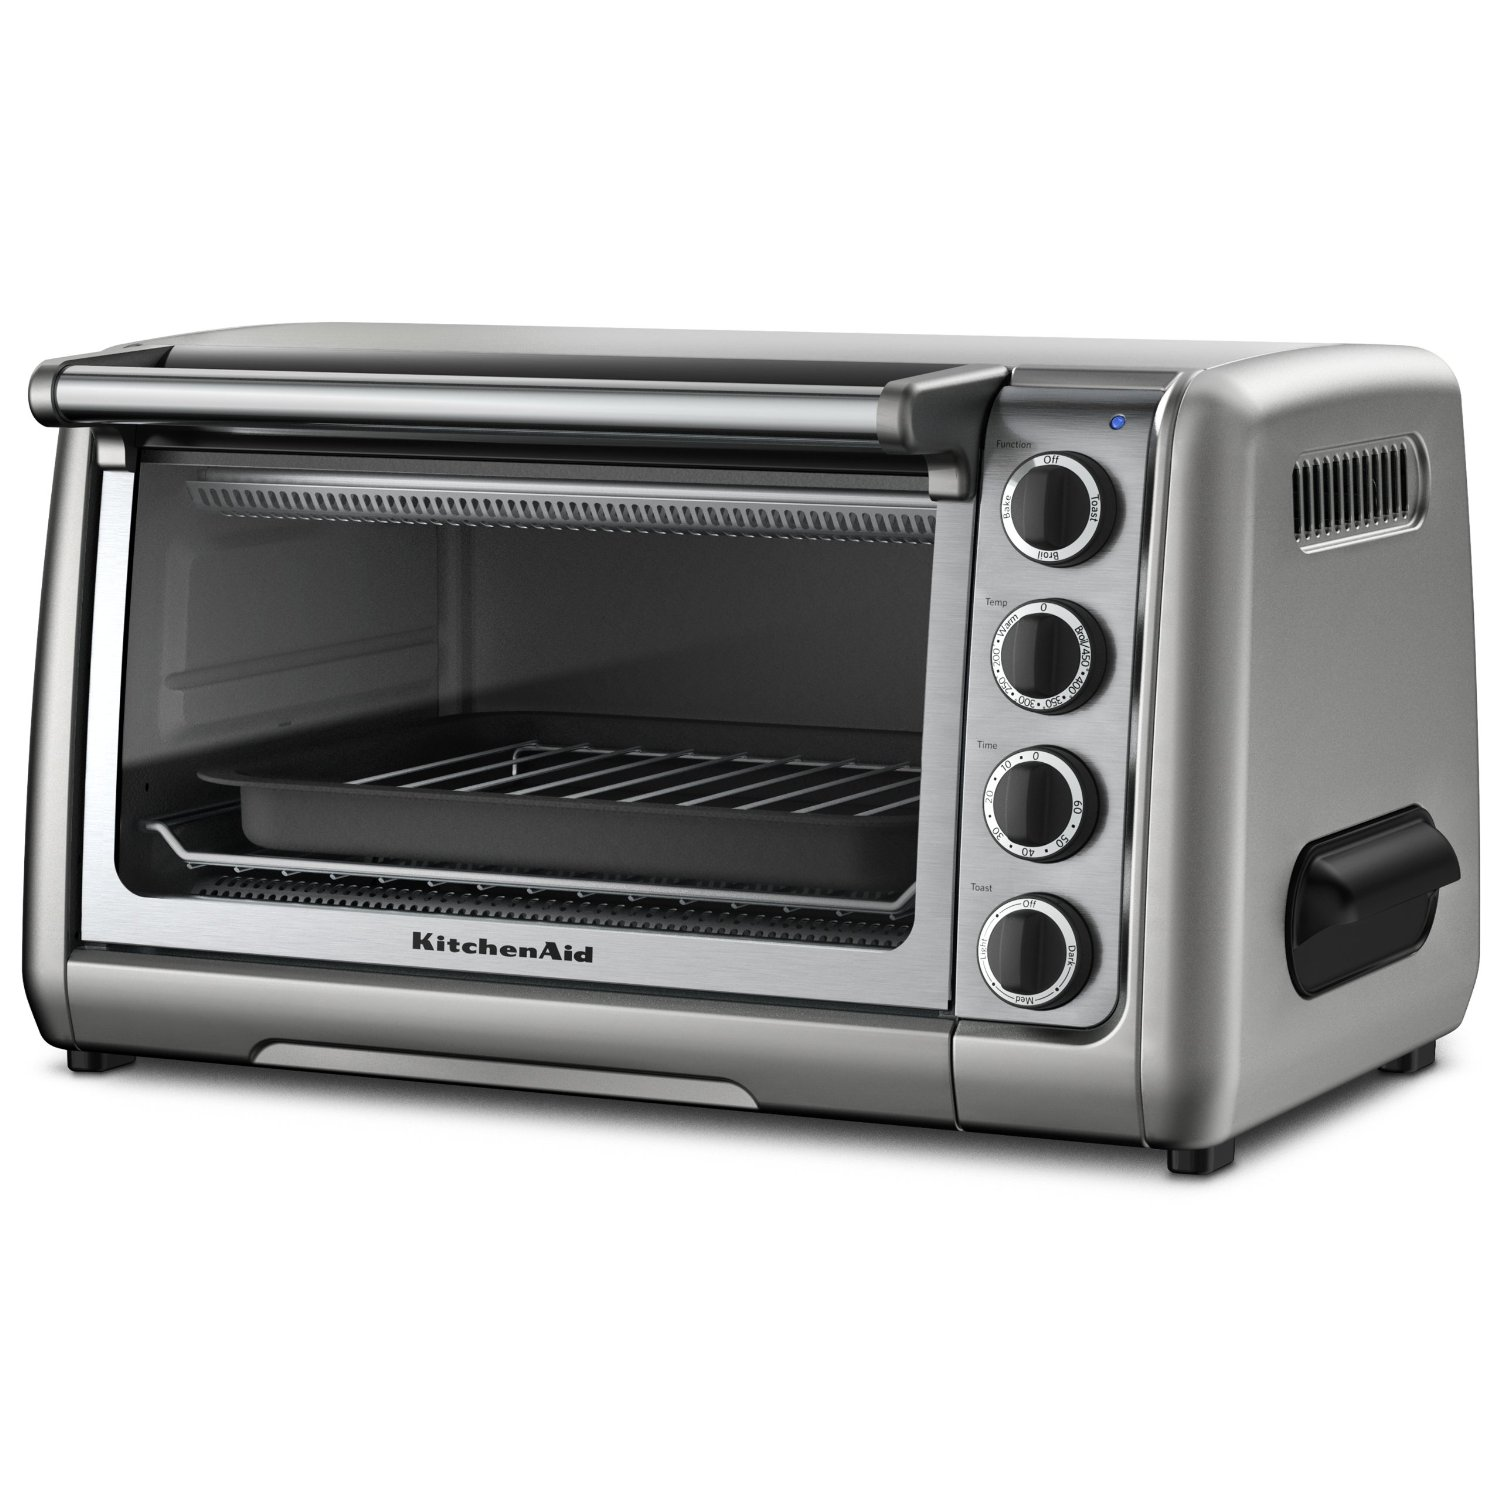 Countertop Oven Toaster : KitchenAid Toaster Oven only $54.99 (reg $120)